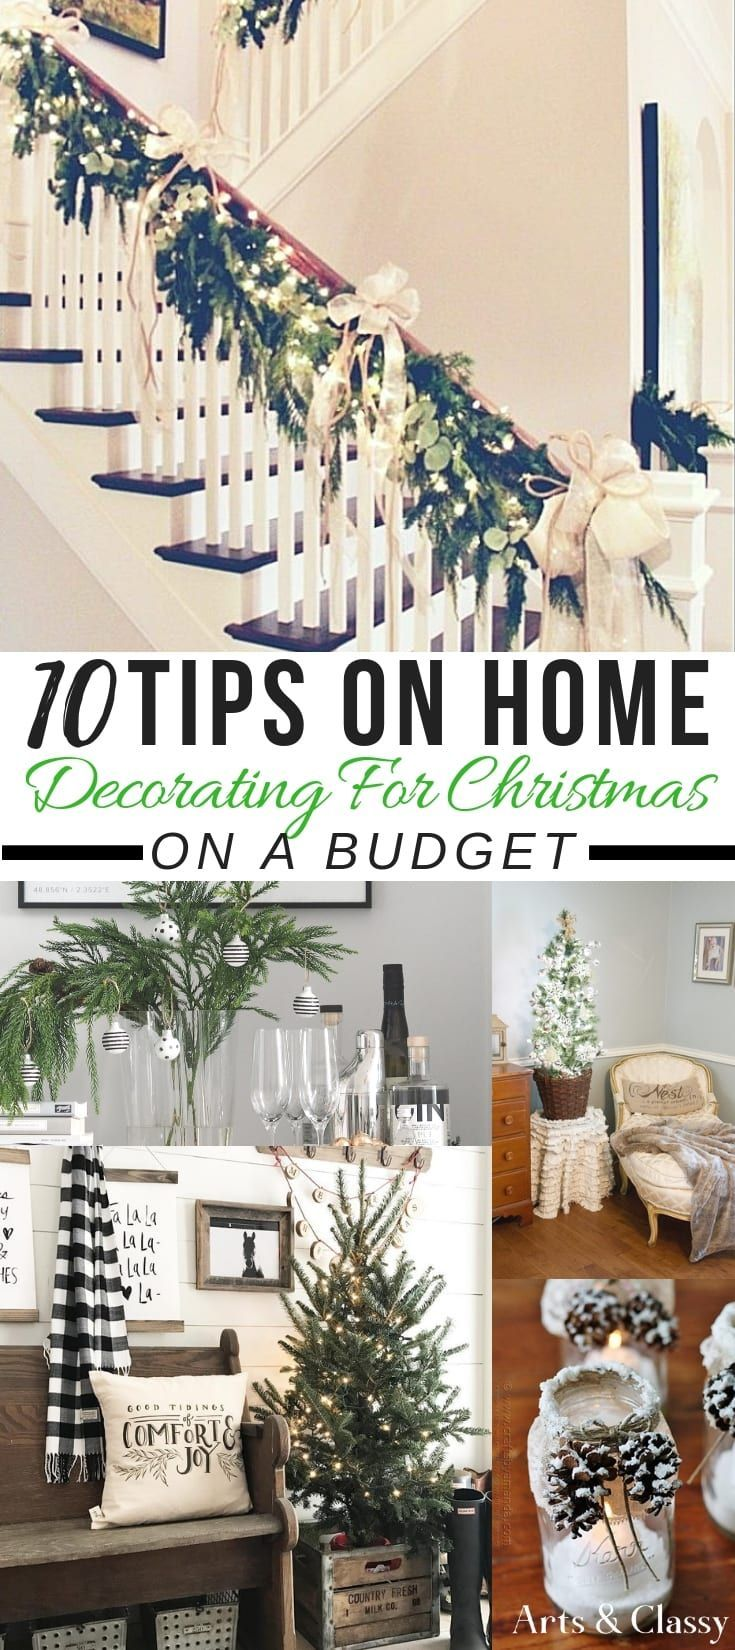 10 Tips on Home Decorating For Christmas on a Budget + FREE Printables